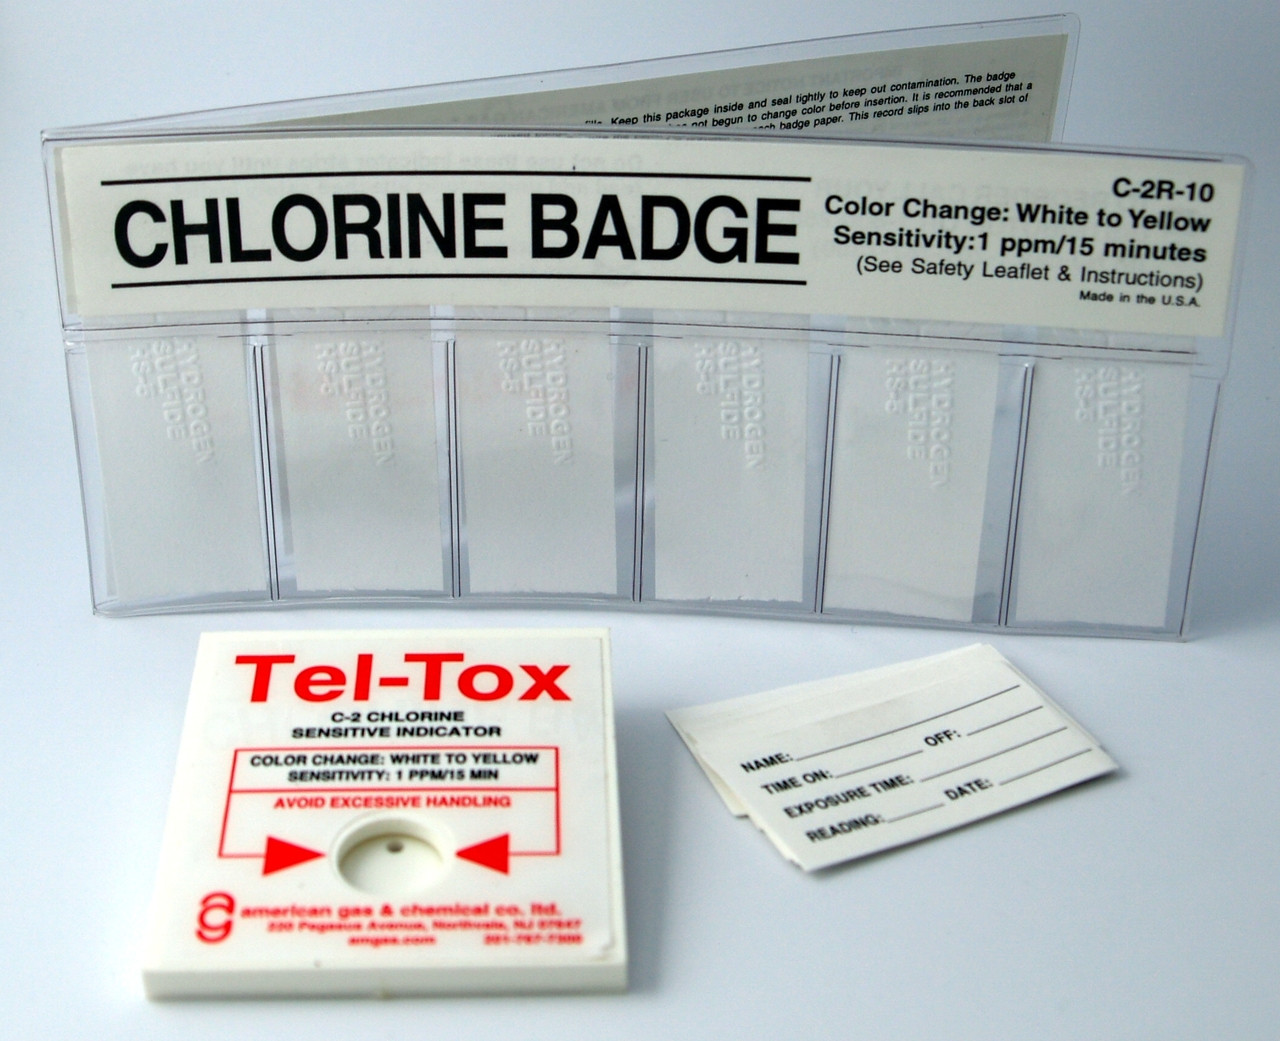 C-2K Chlorine Badge Kit